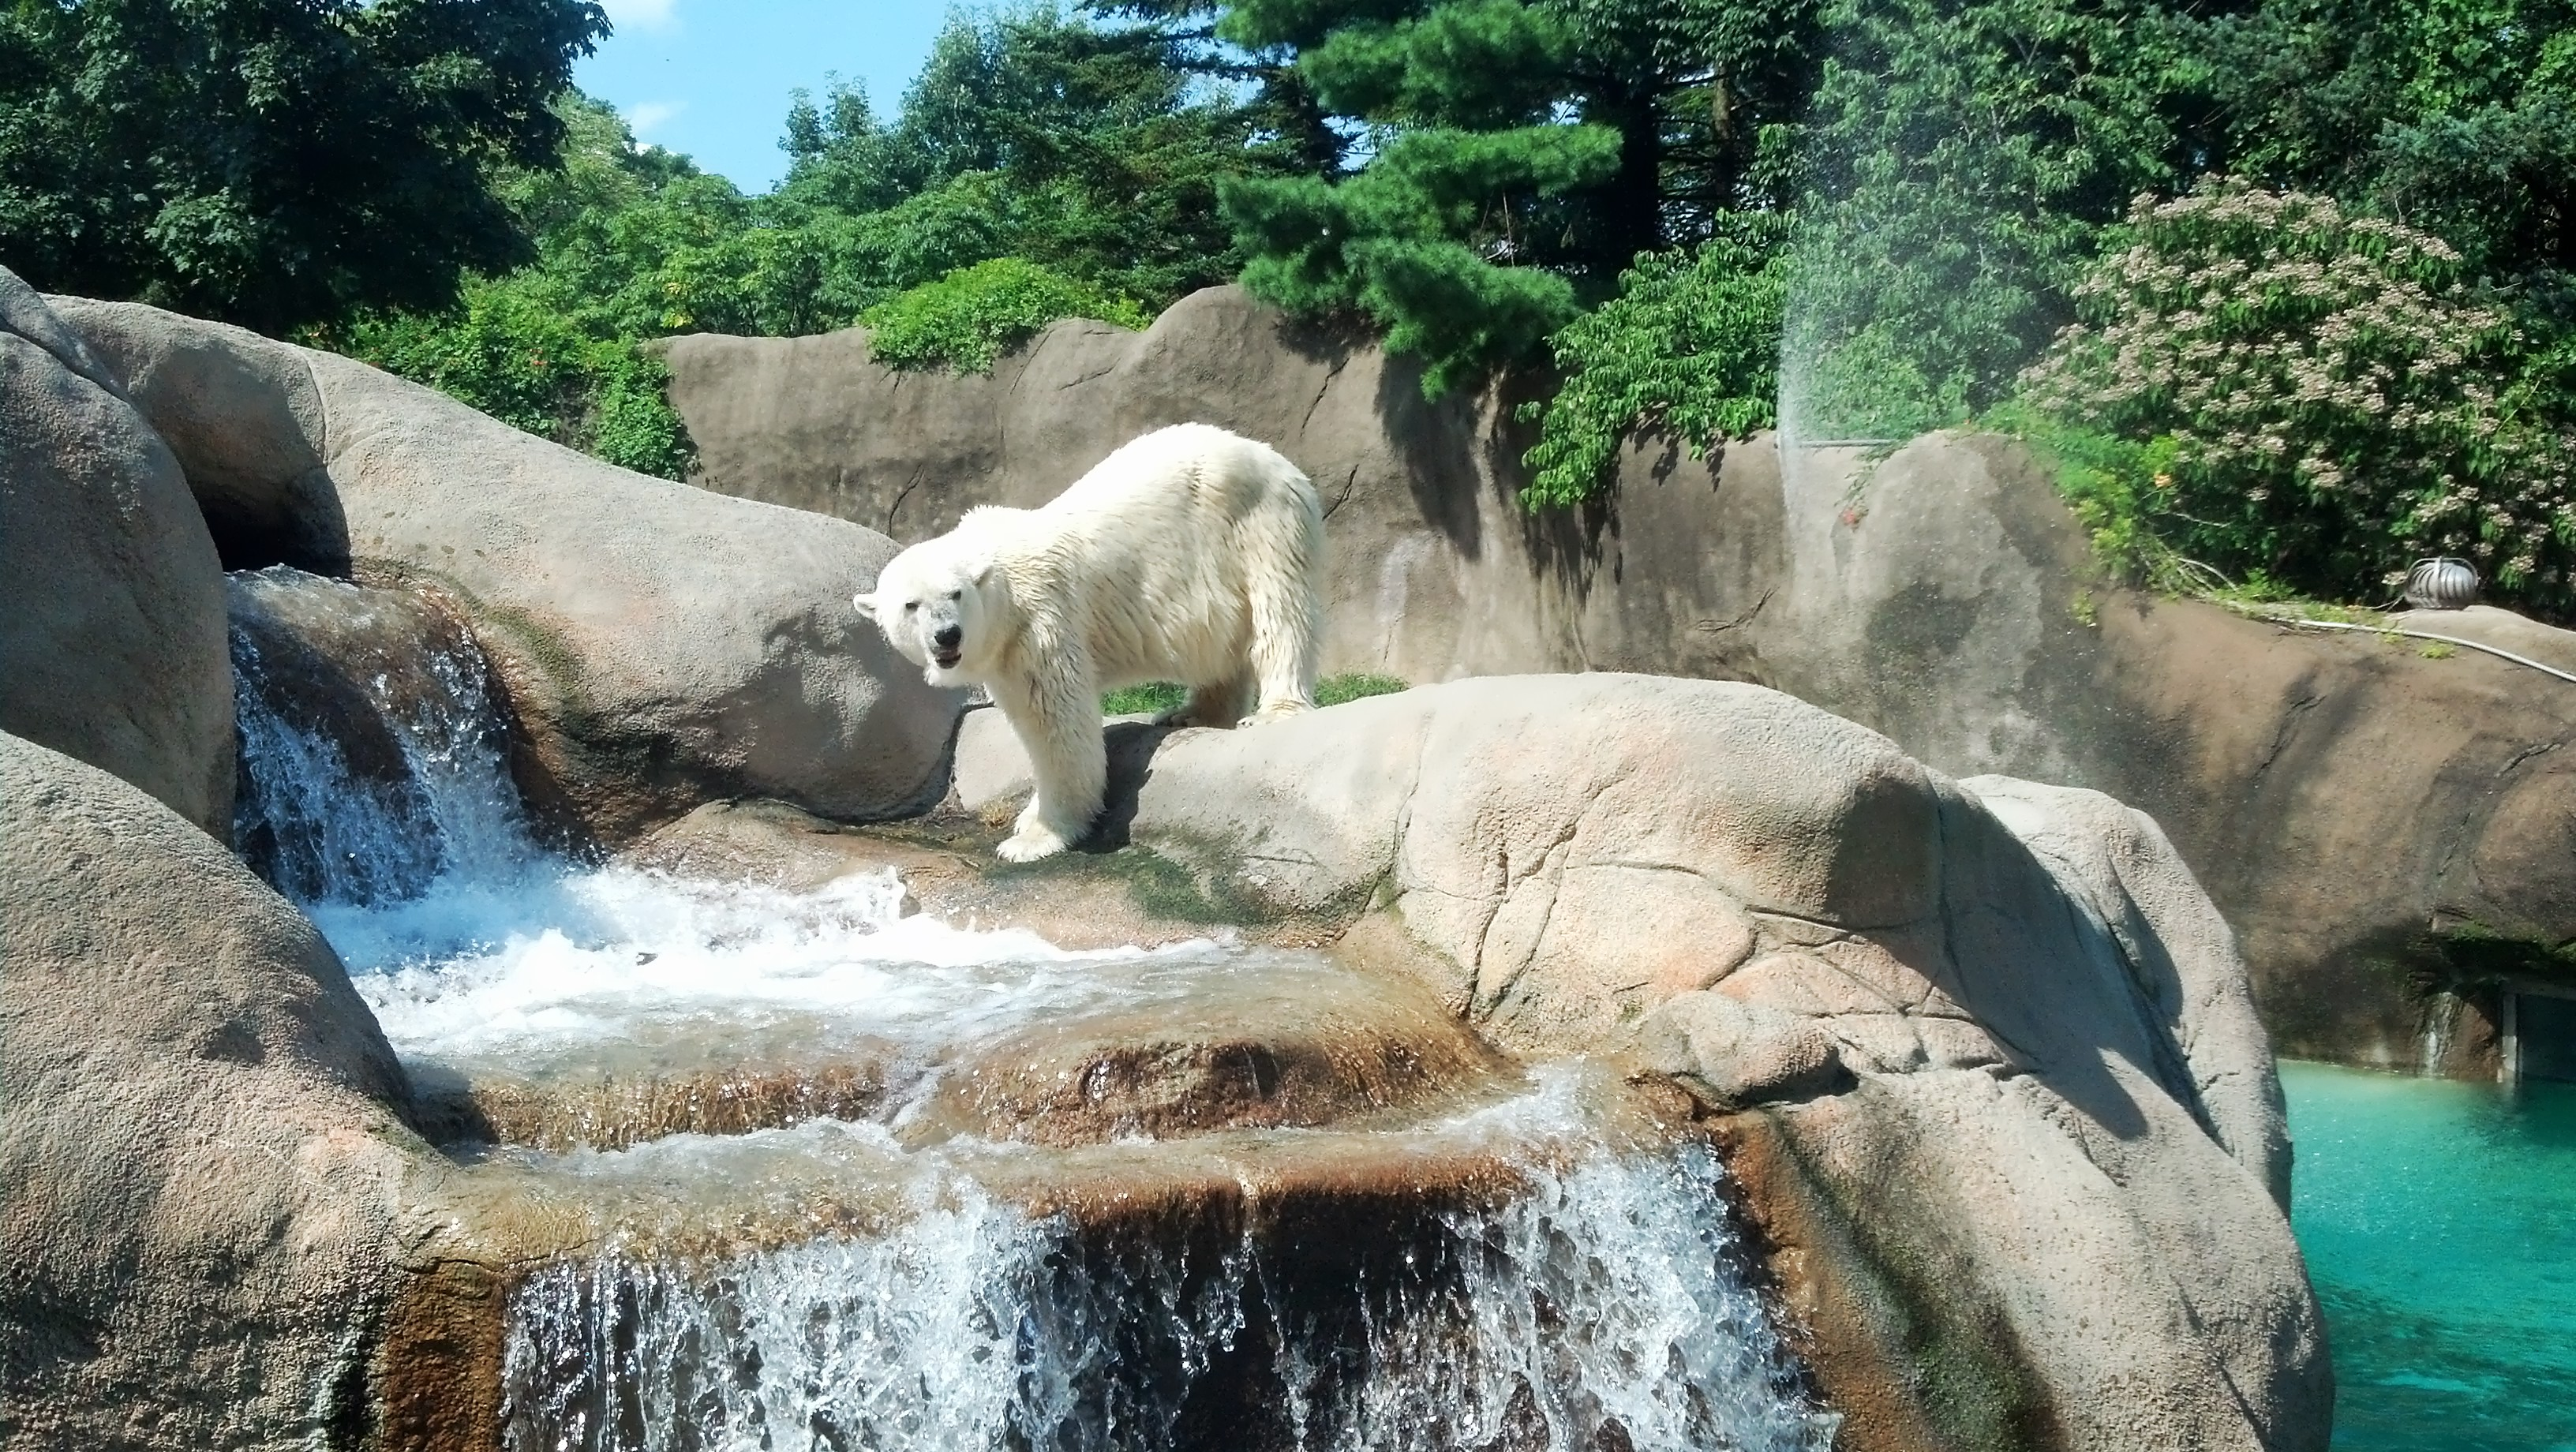 A Day at the Philadelphia Zoo